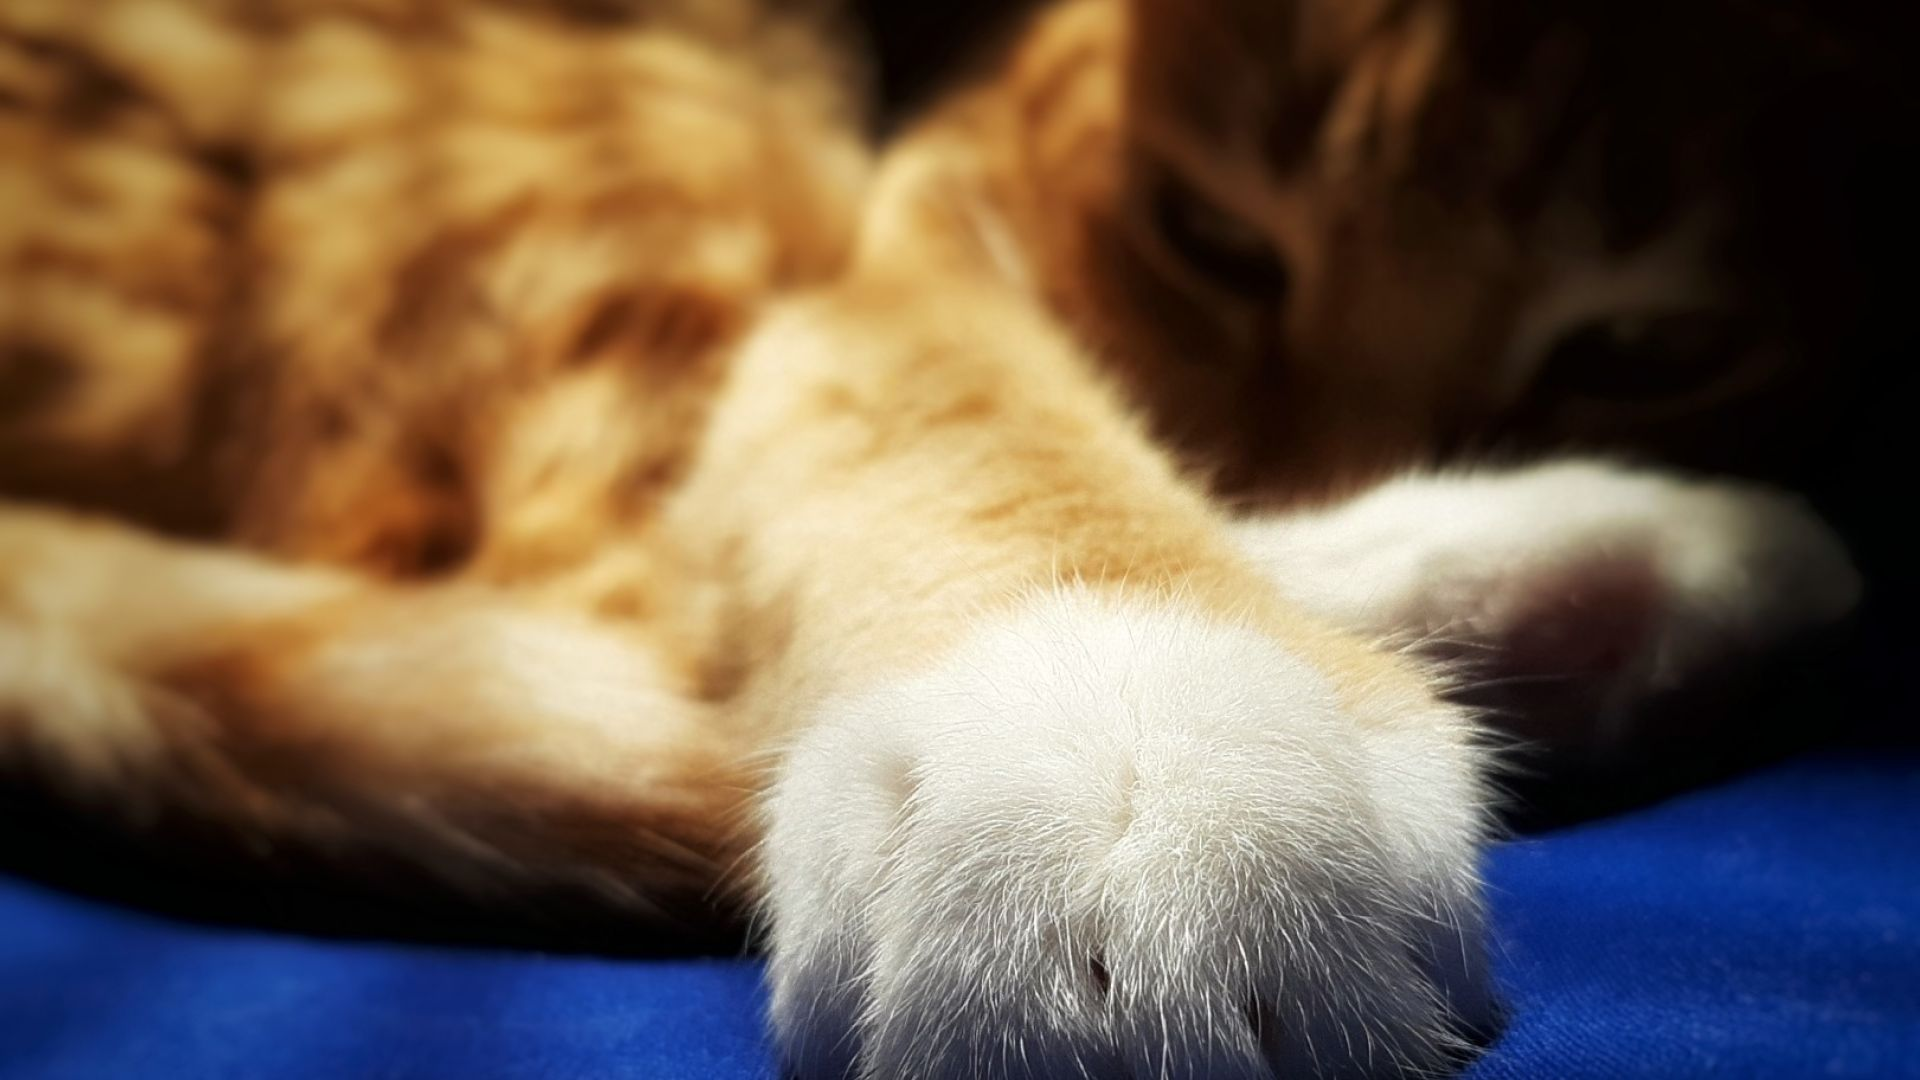 Fluffy Paws